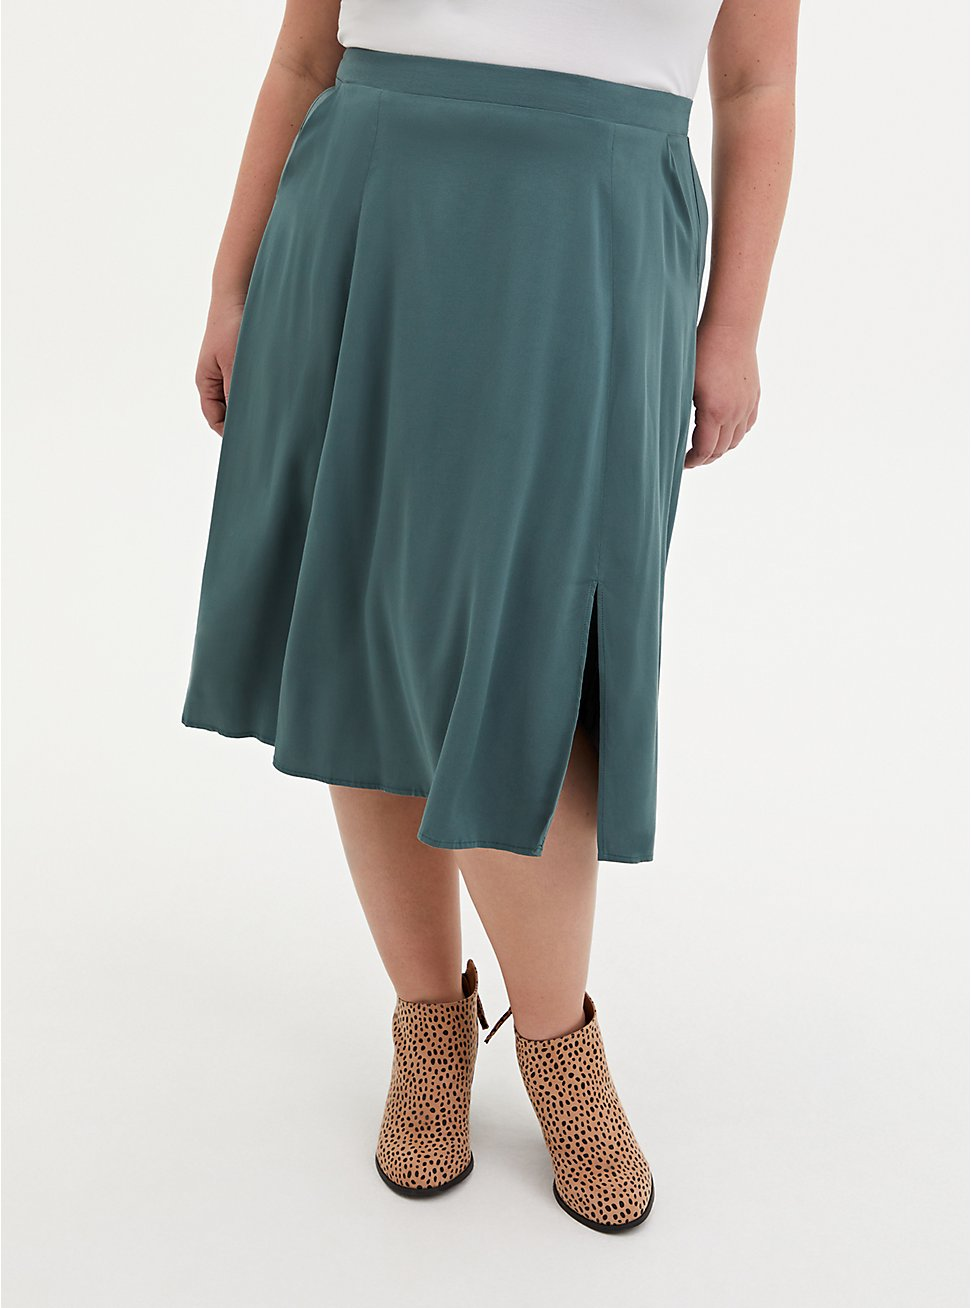 Pine Green Stretch Challis Slit Midi Skirt, , hi-res